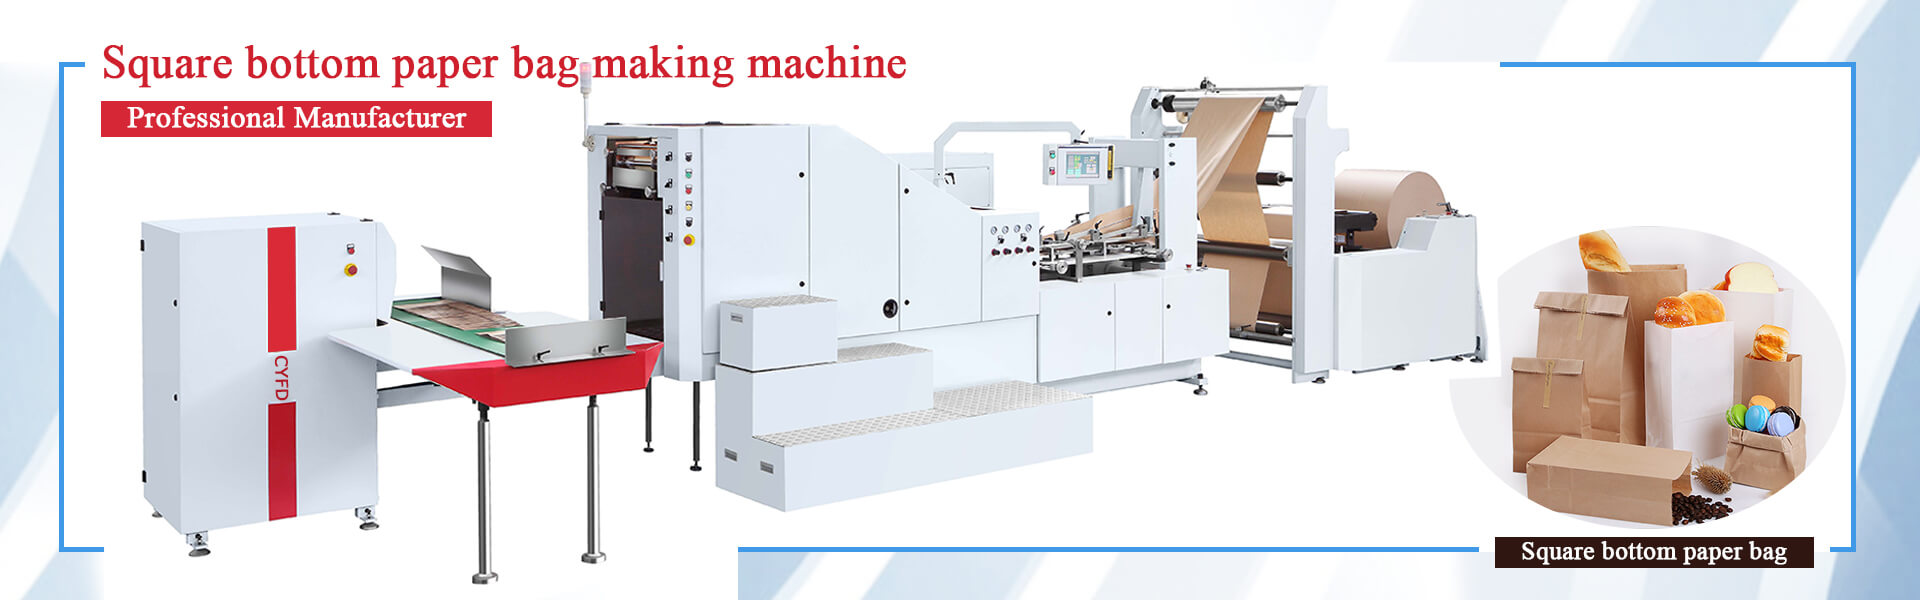 square bottom paper bag machine